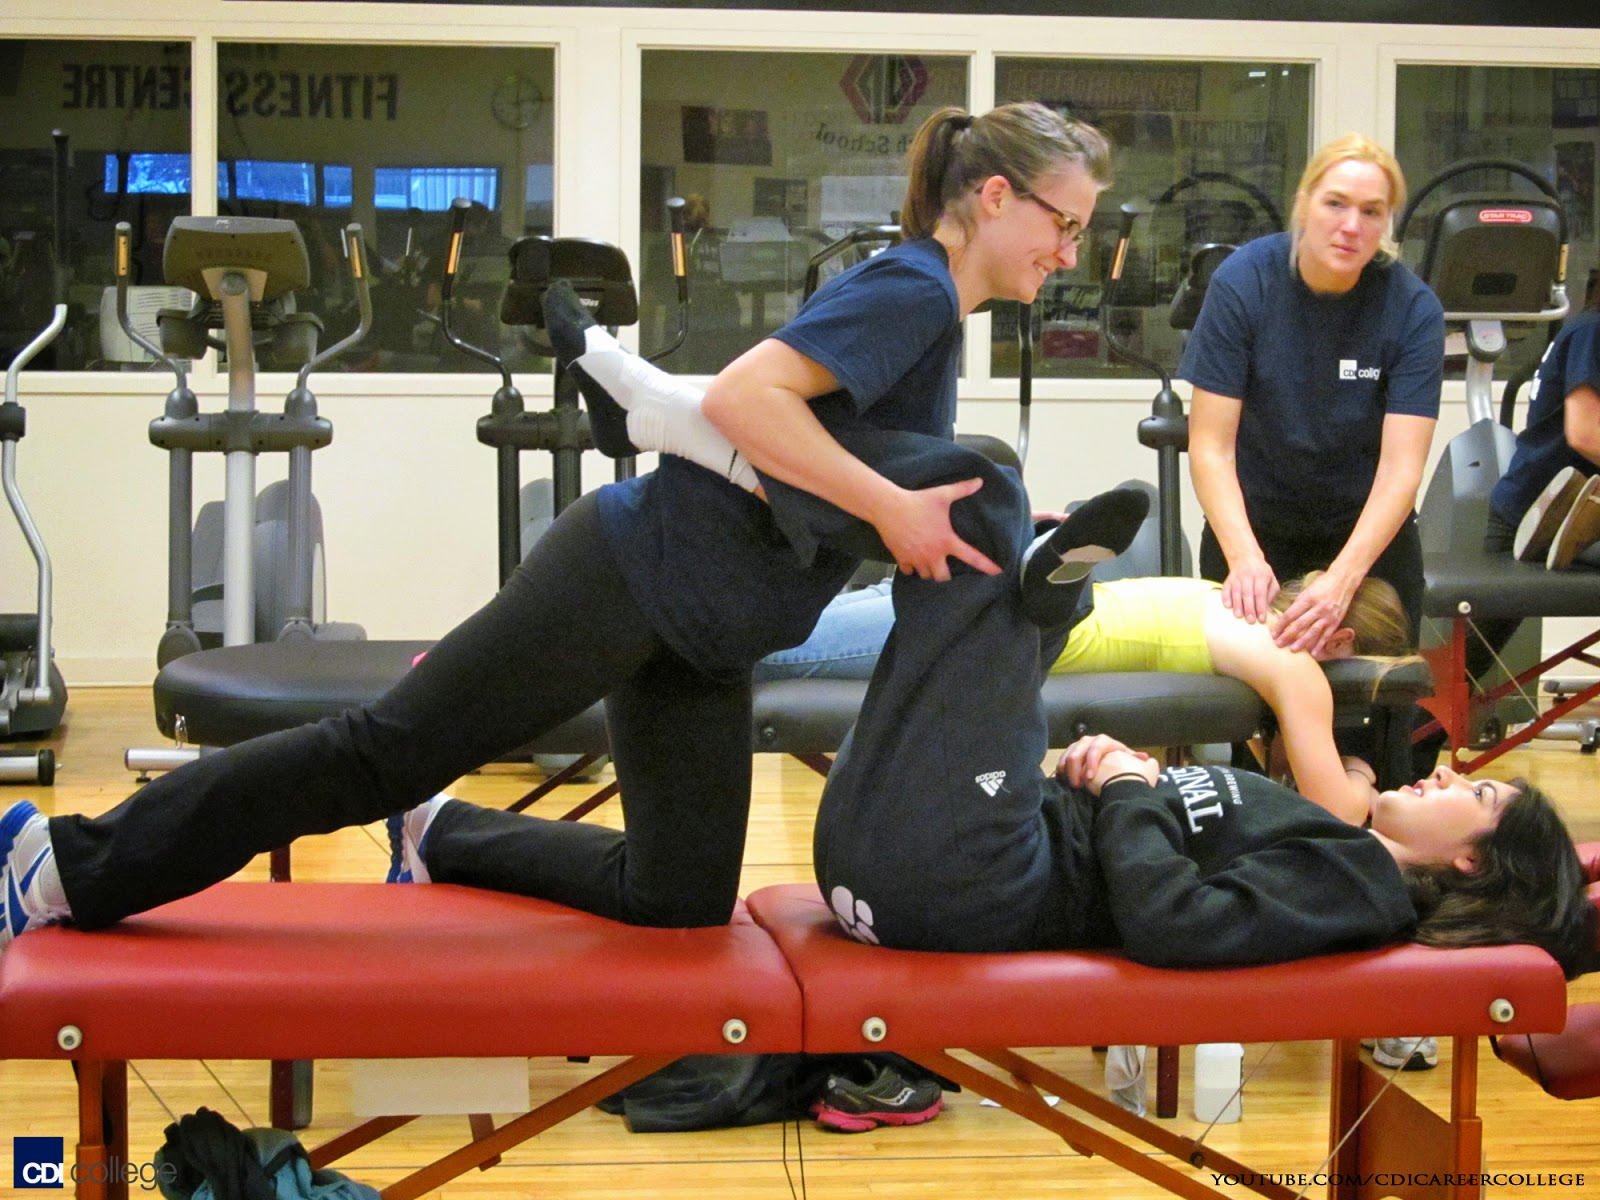 Cdi College Cdi College Massage Therapy Students At-3780